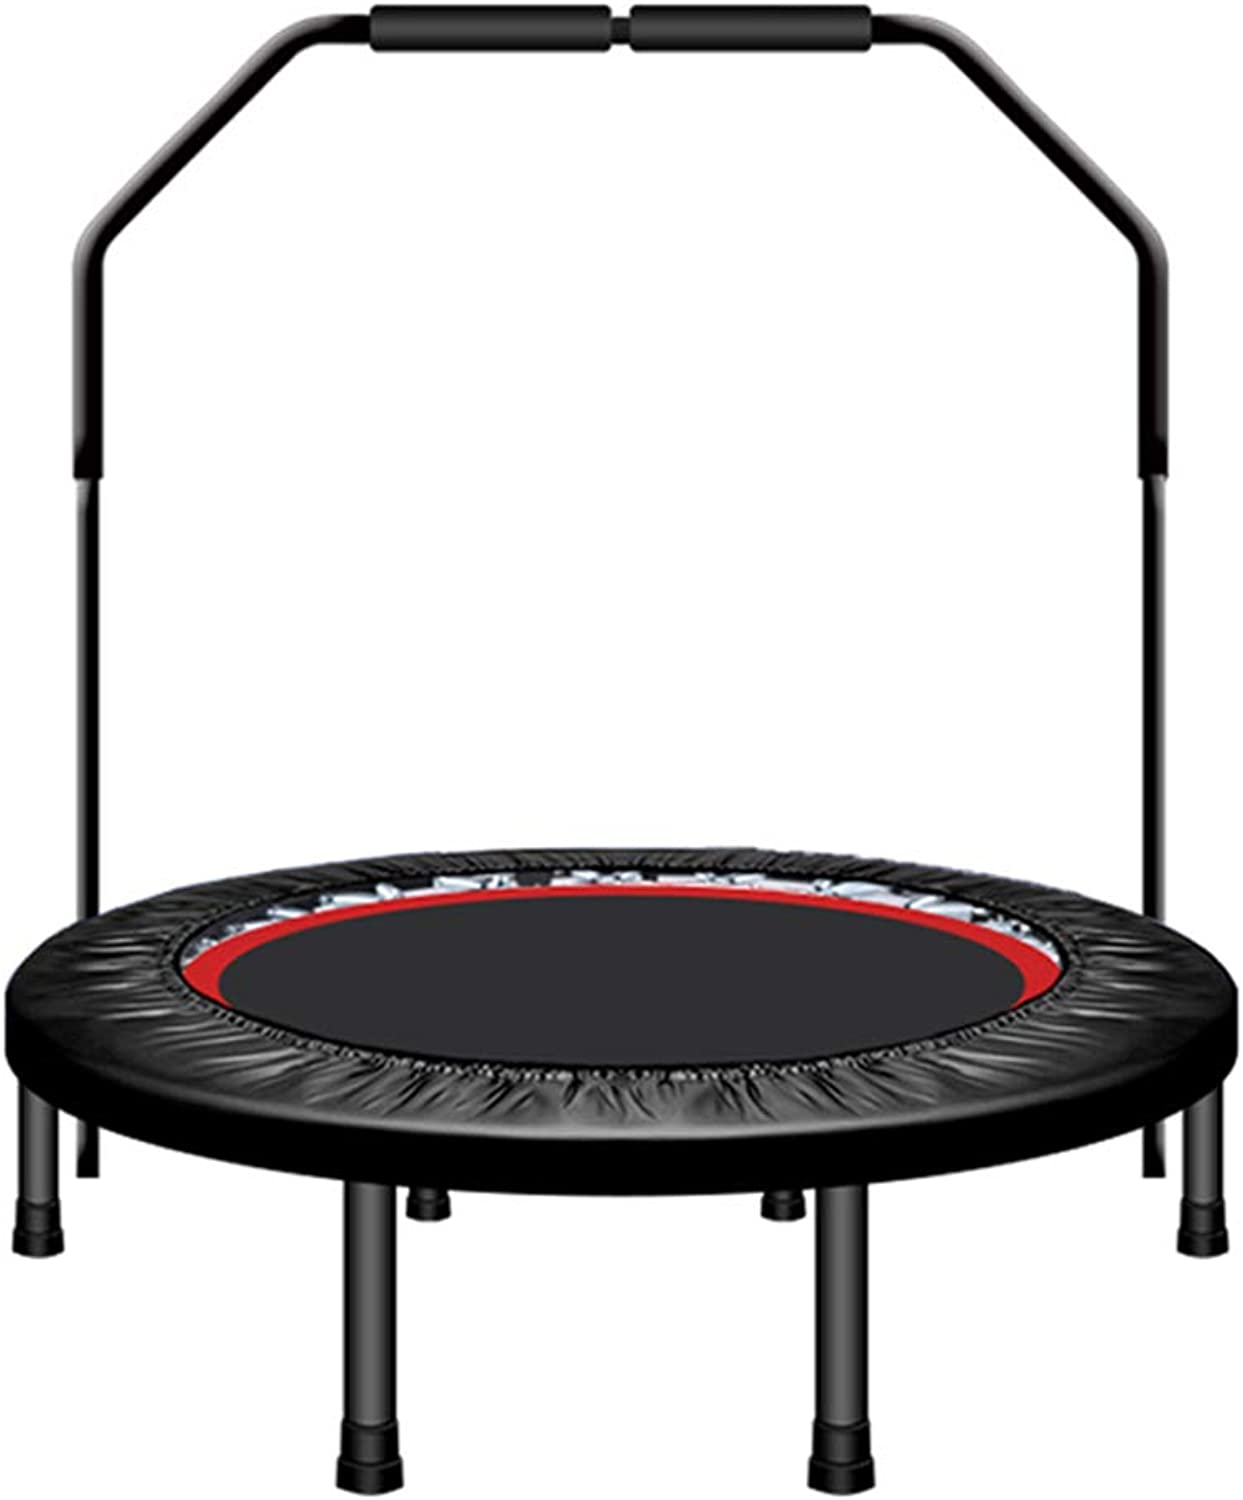 Trampolines Trampoline Household Adult Trampoline Indoor Sports Equipment Collapsible Trampoline Loading Weight 200kg (color   with armrests, Size   122cm(48inches))